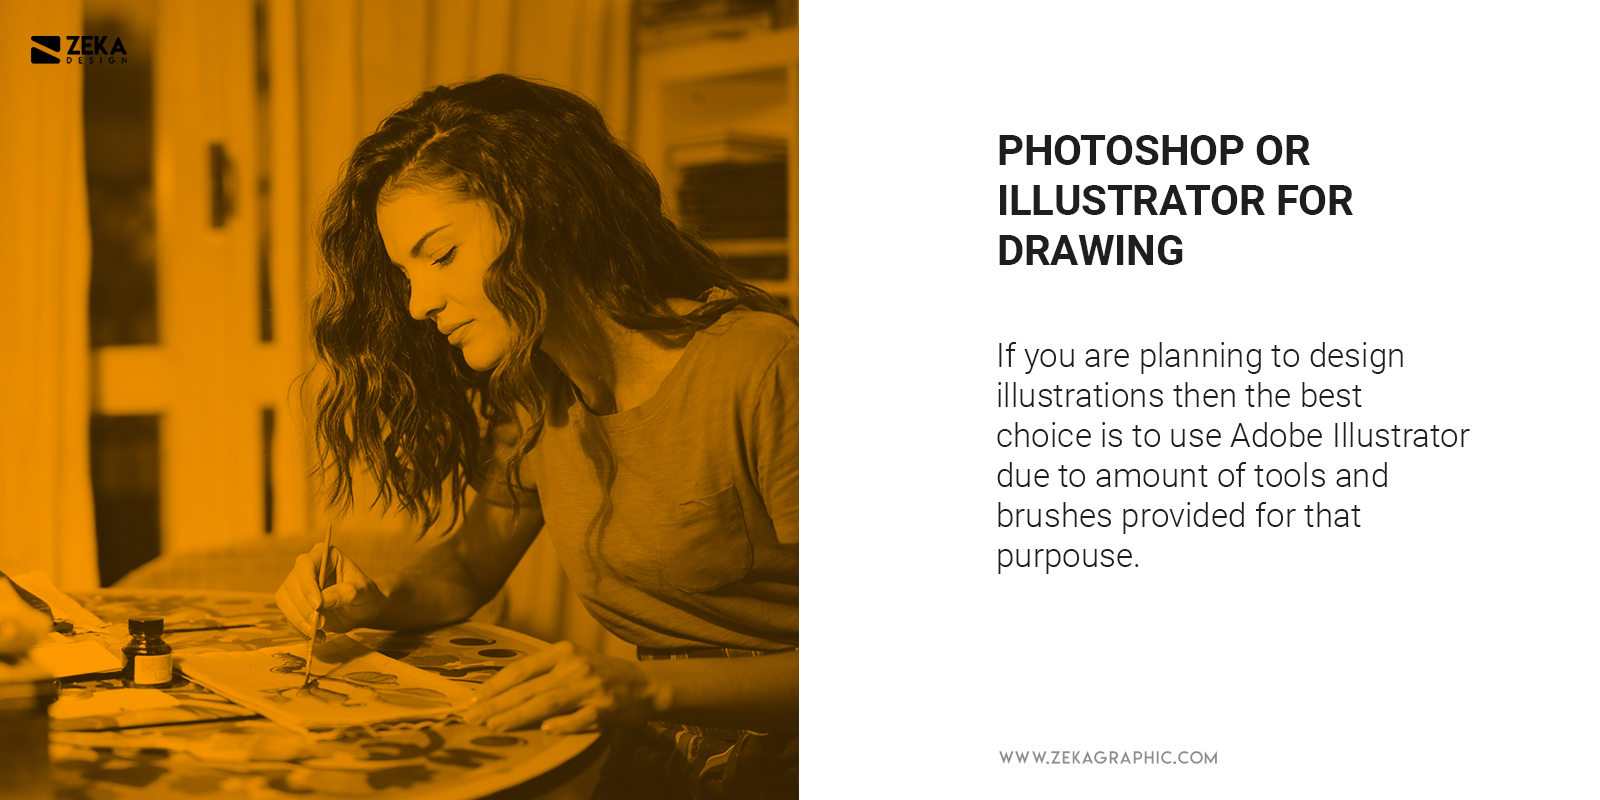 photoshop vs illustrator for drawing which is better